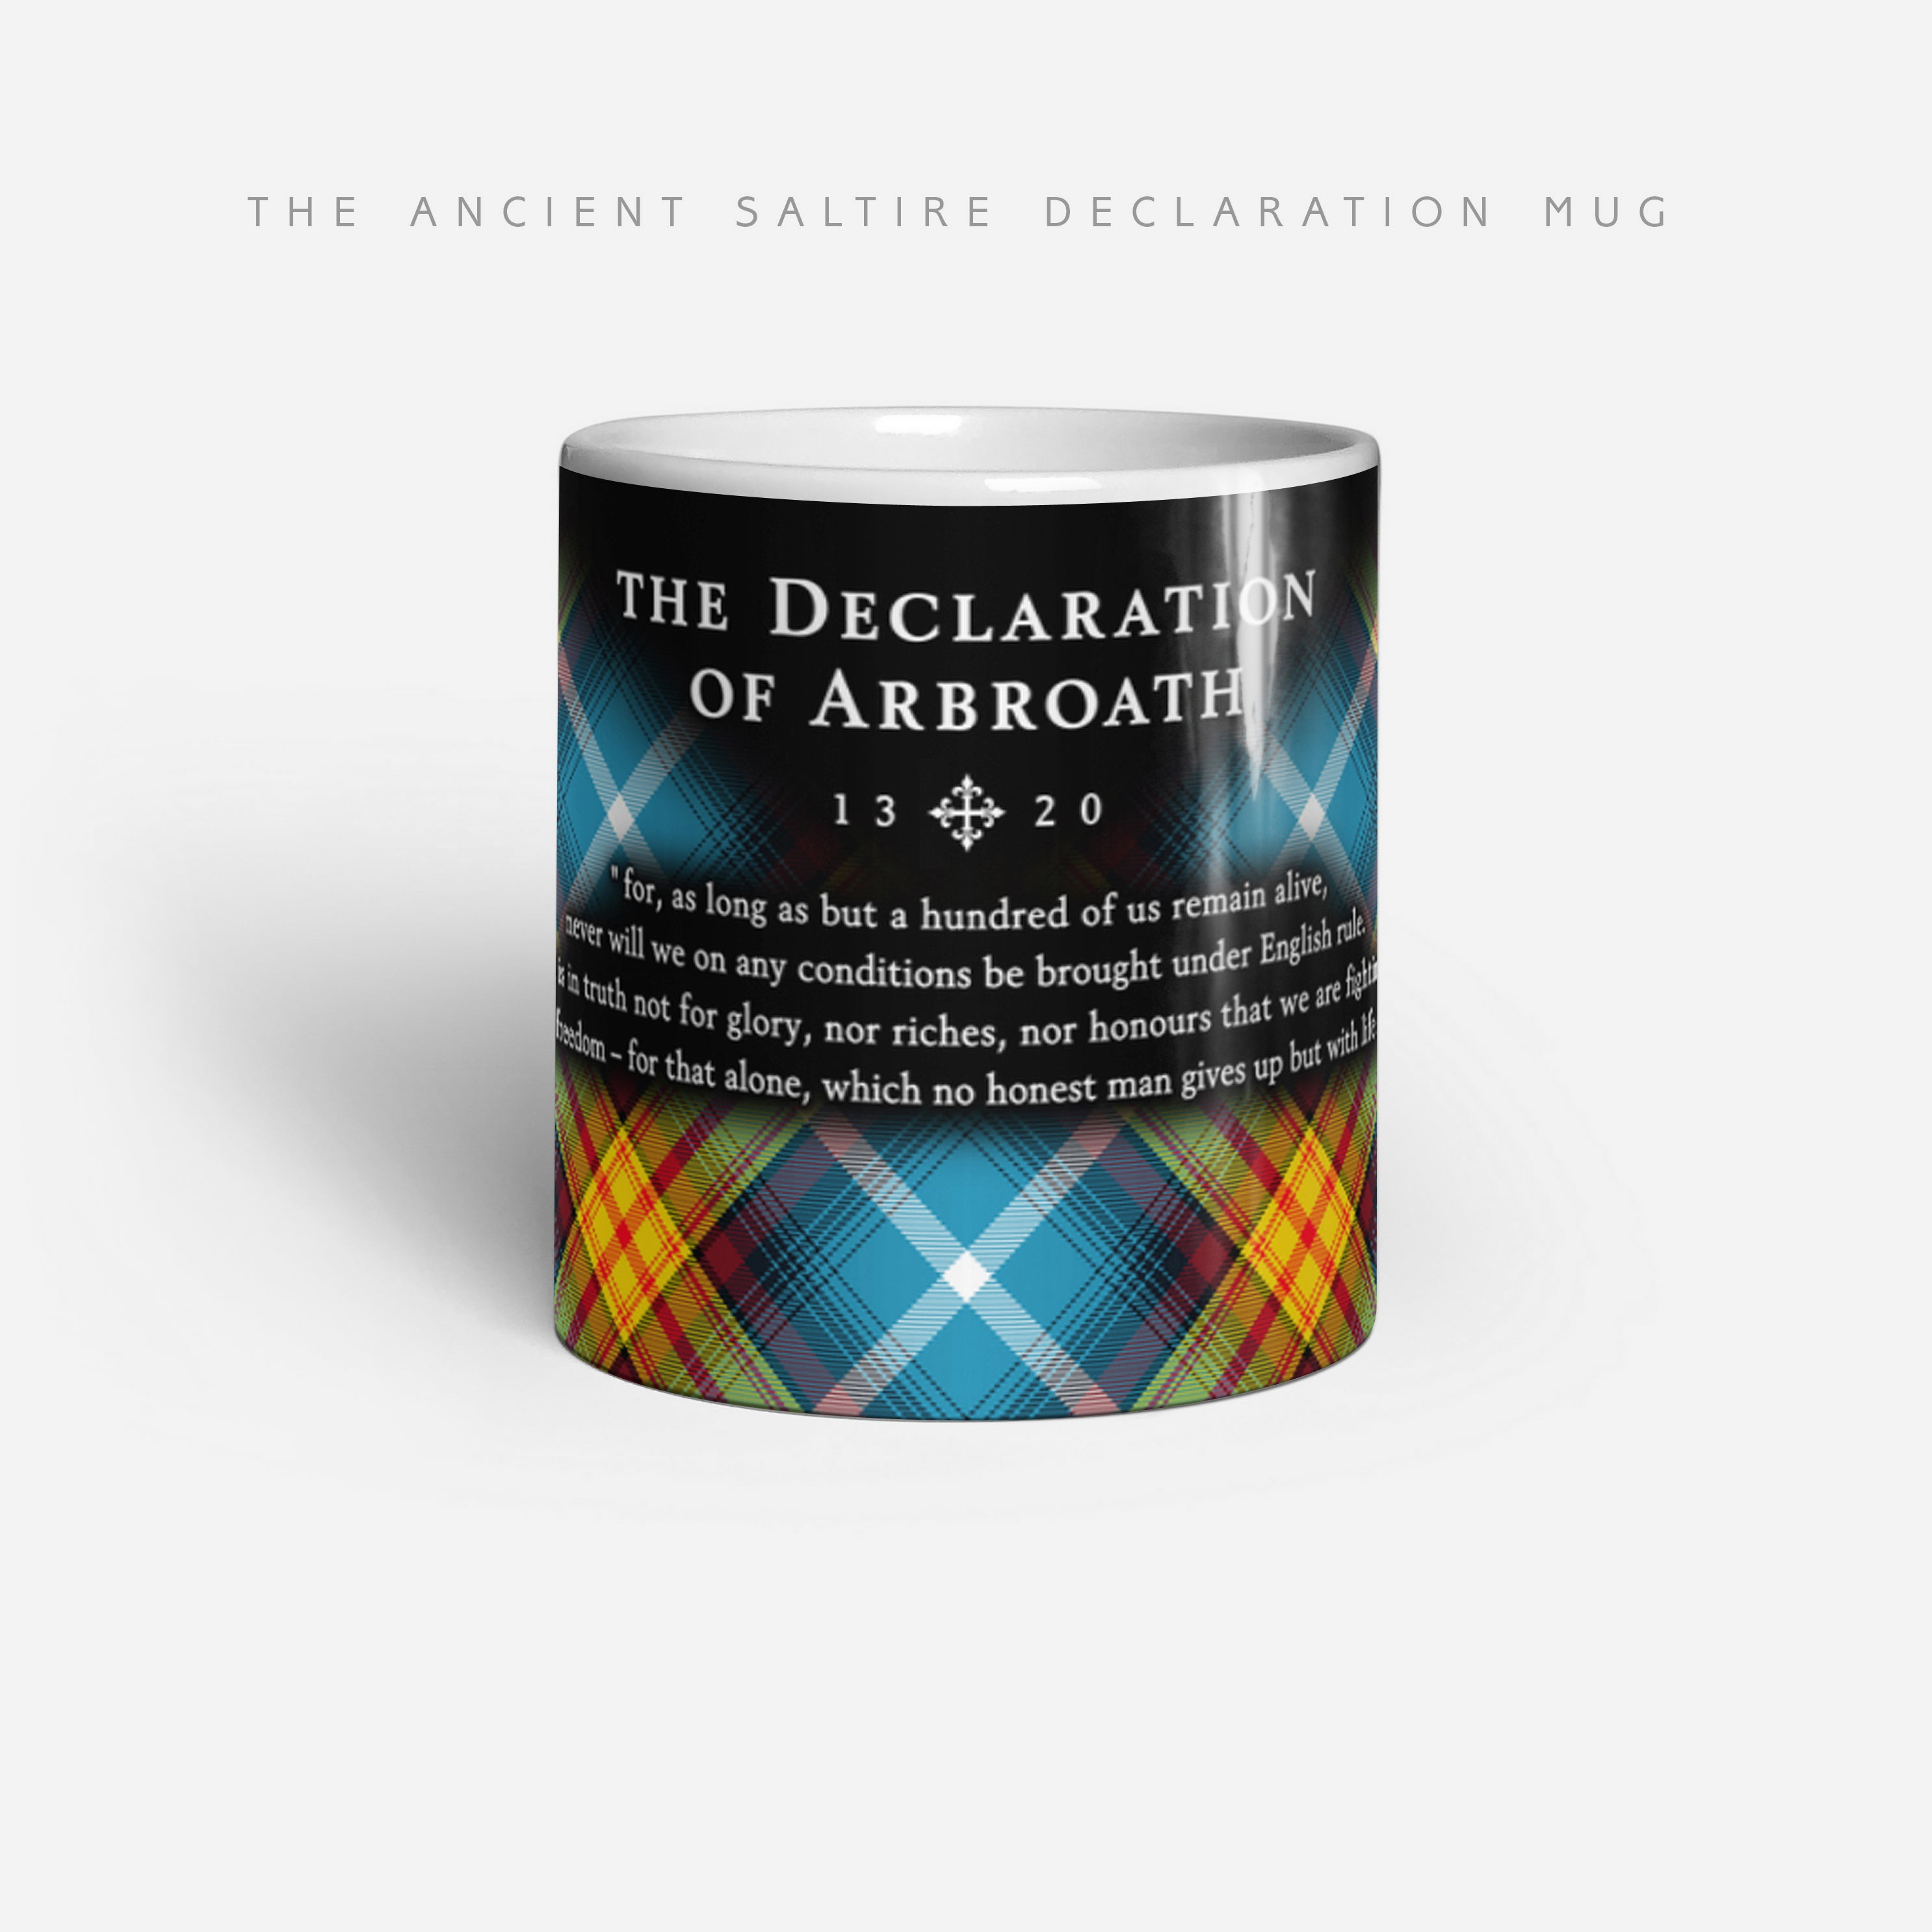 The Declaration of Scottish Independence Tartan Mug - ancient saltire